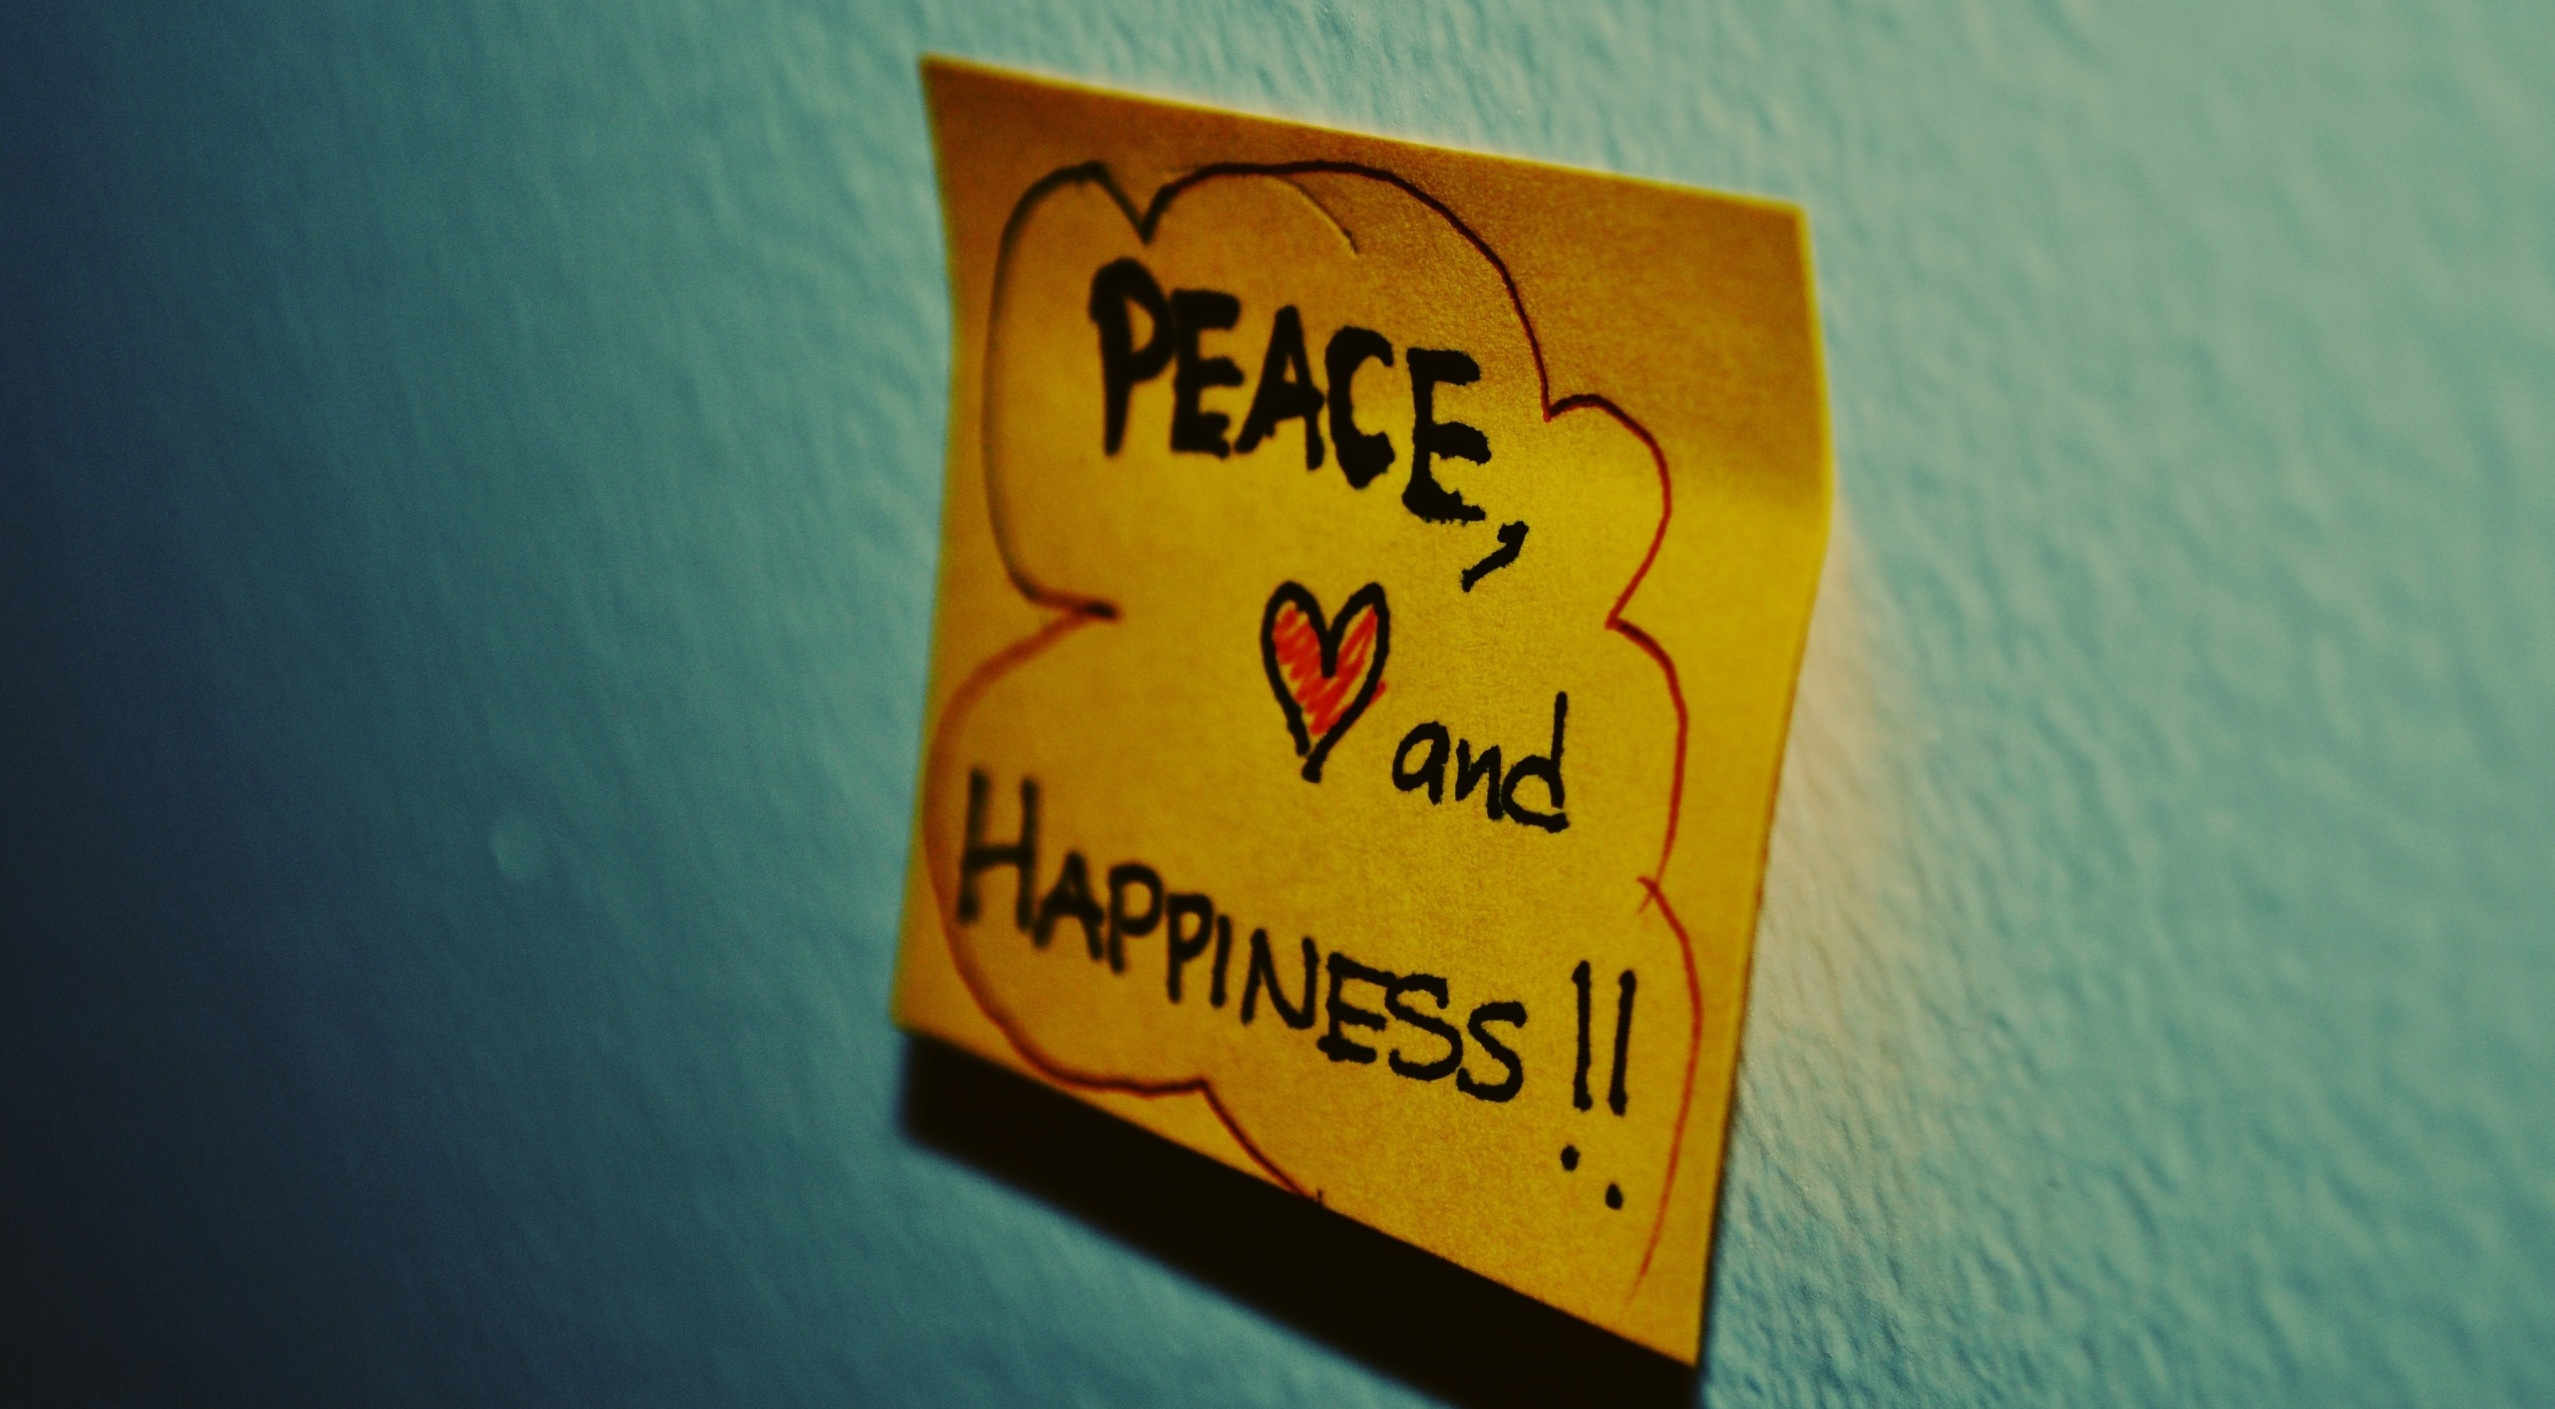 http://obviousmag.org/1sb/2015/04/28/imagens/peace_love_and_happiness-wallpaper-2560x1440.jpg